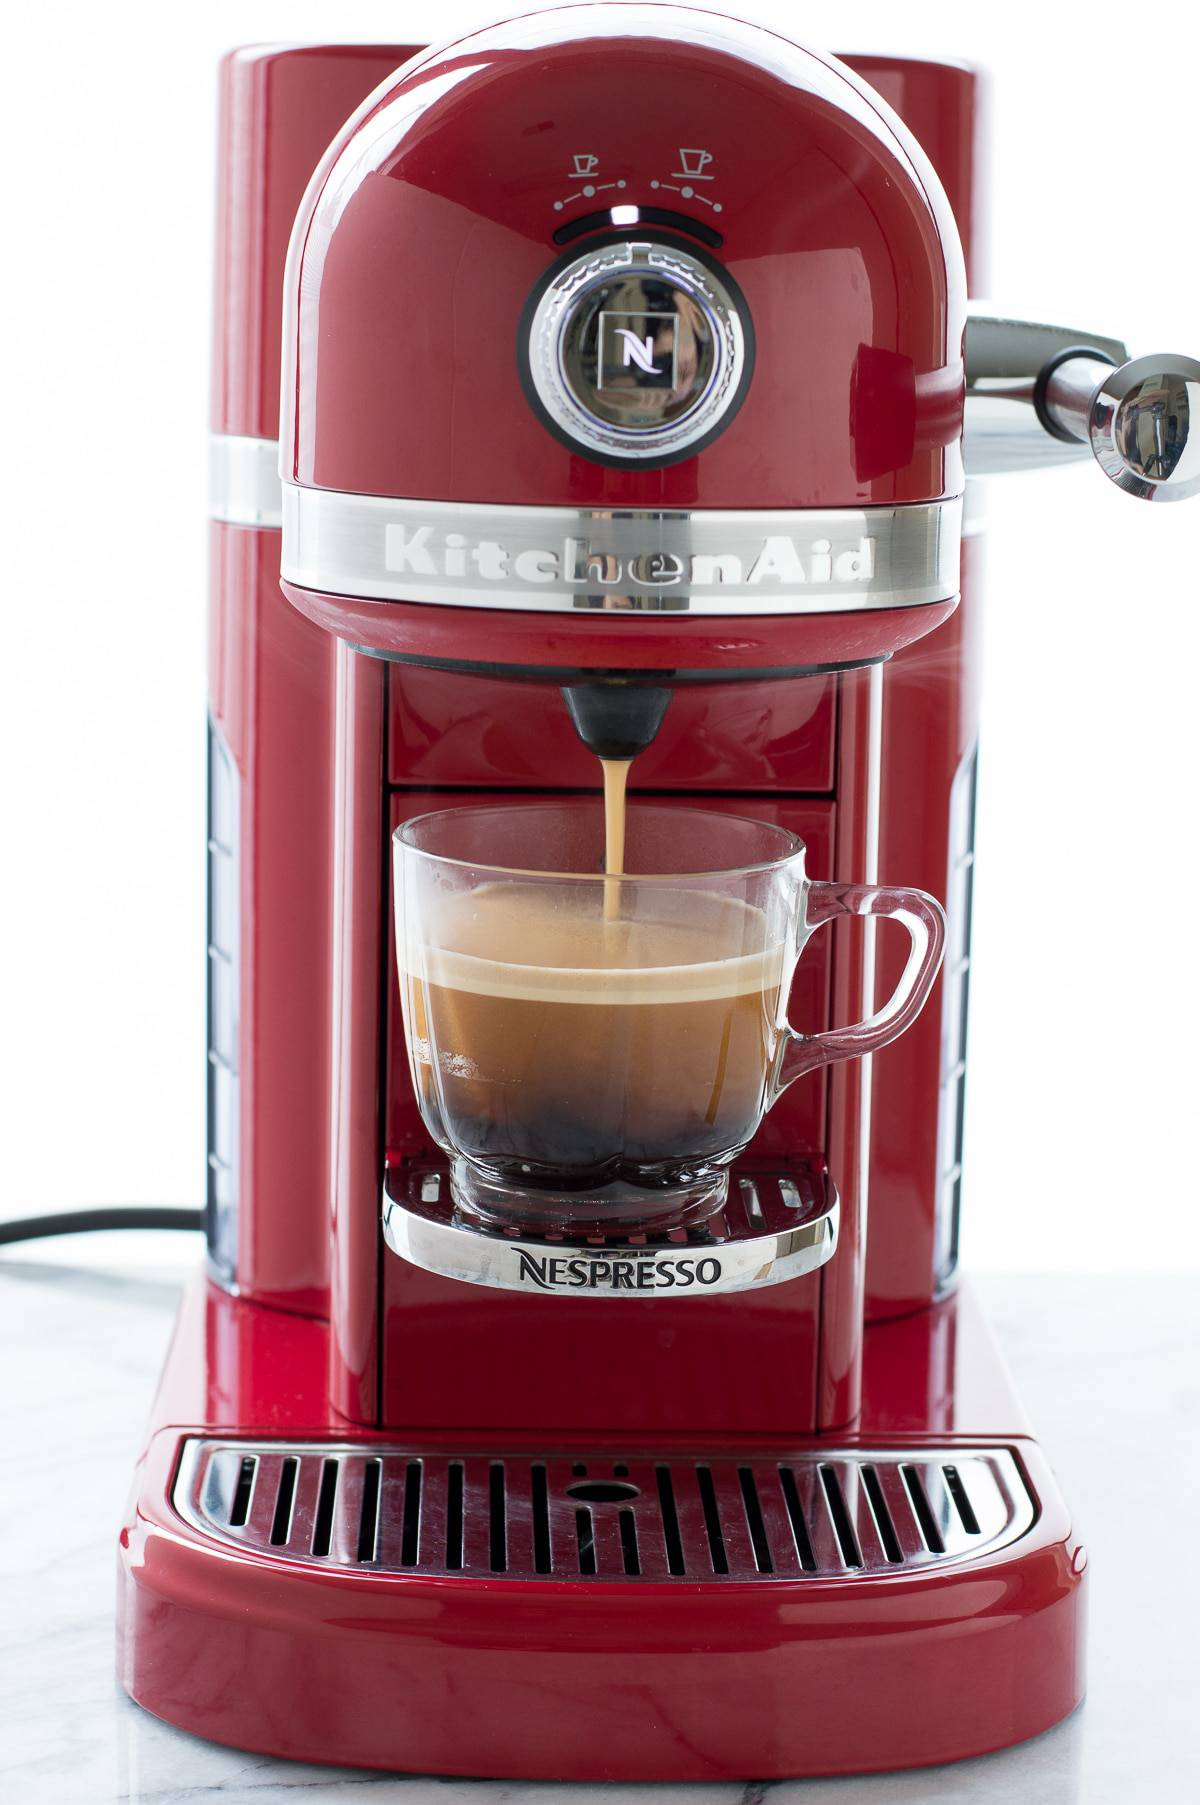 Nespresso Machine from KitchenAid